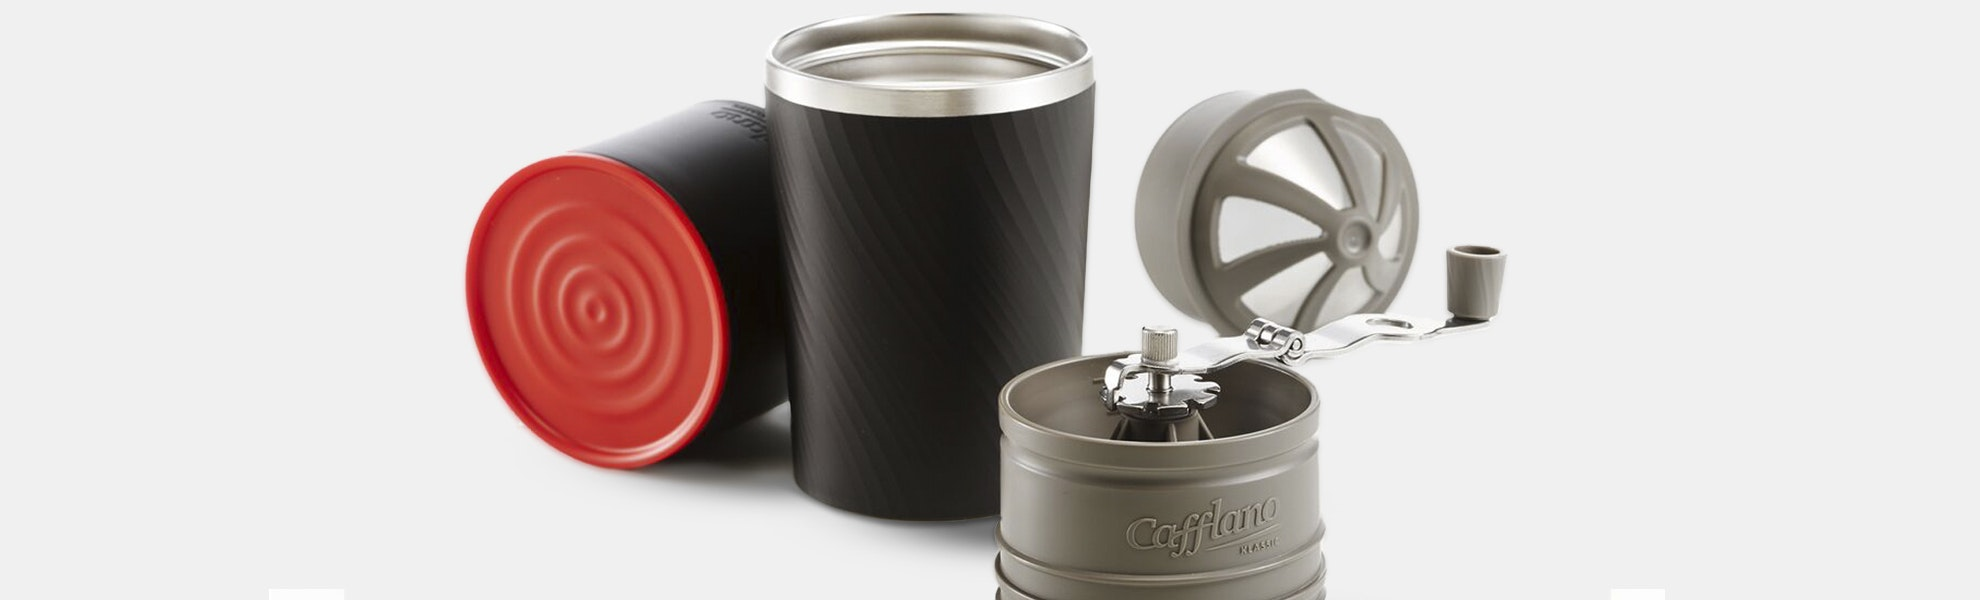 Cafflano Klassic All-in-One Coffee Maker